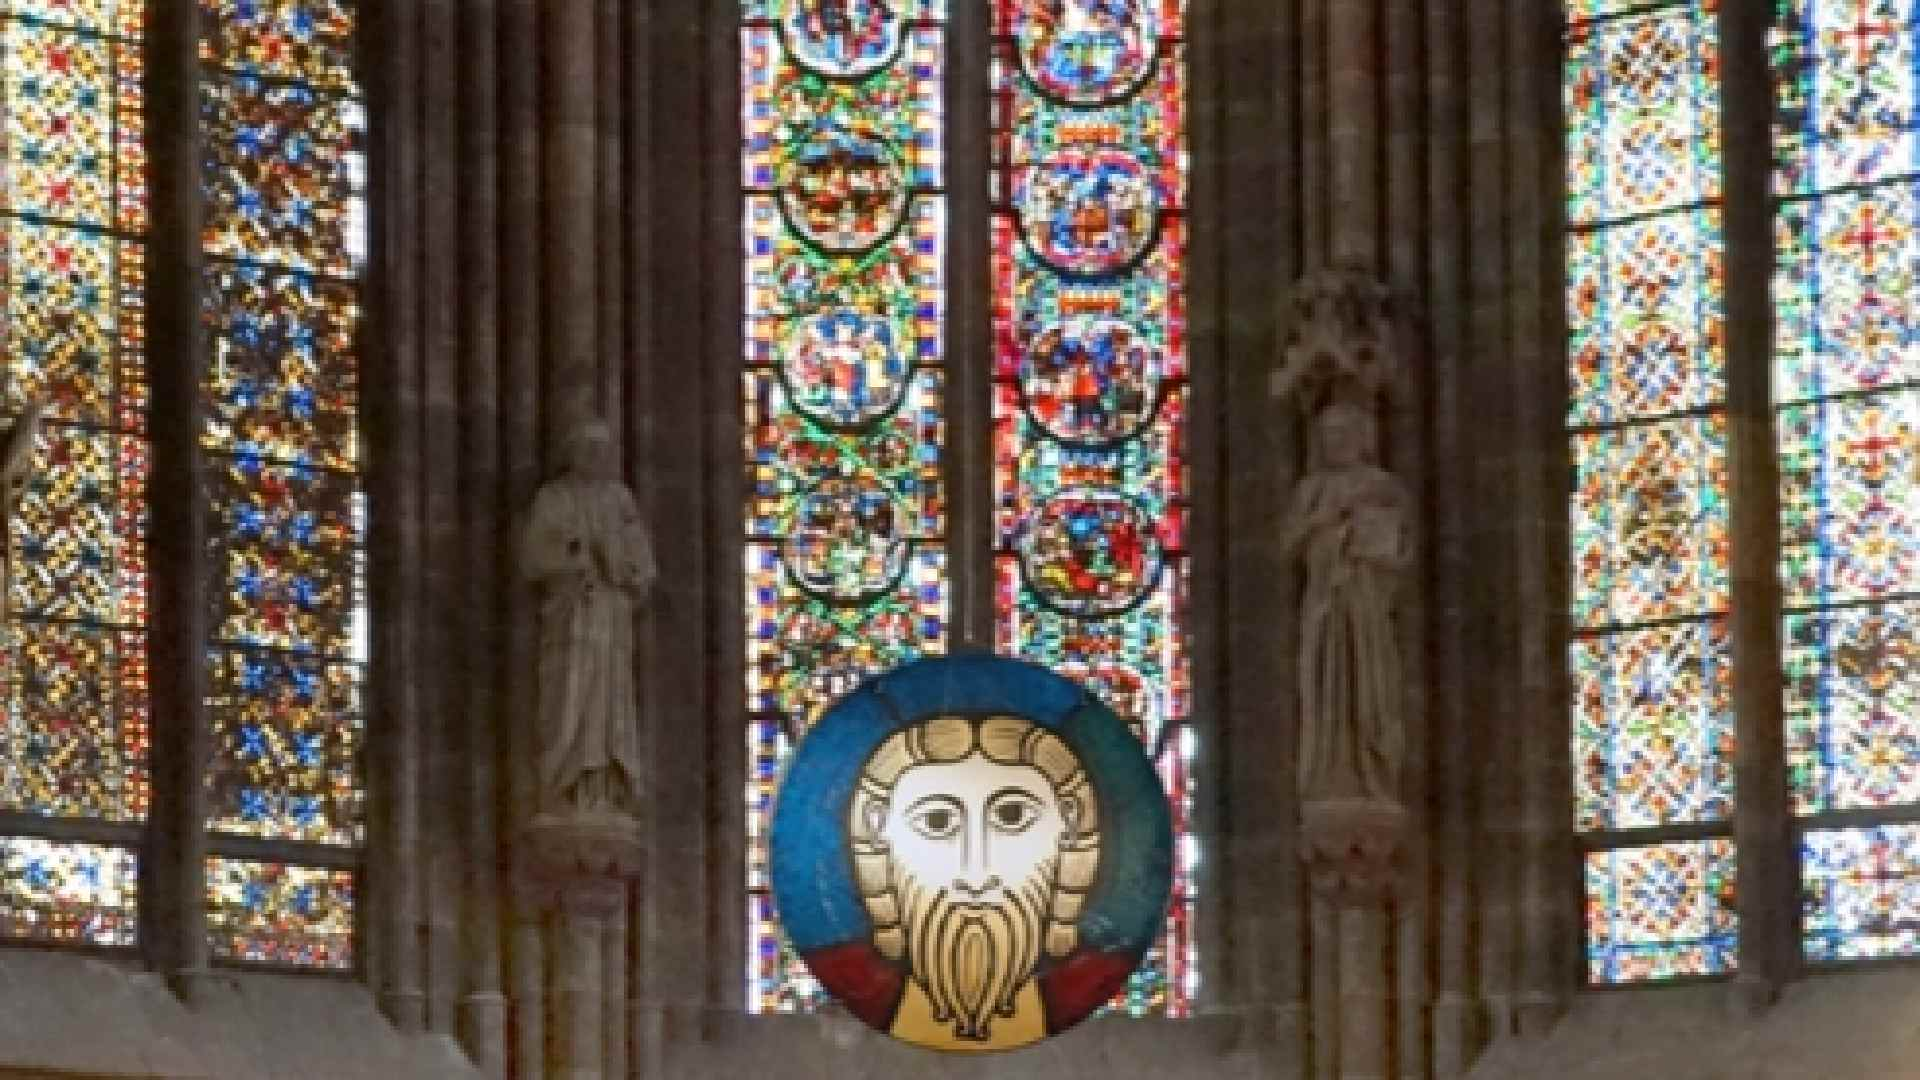 The Most Famous Stained Glass Windows in Europe